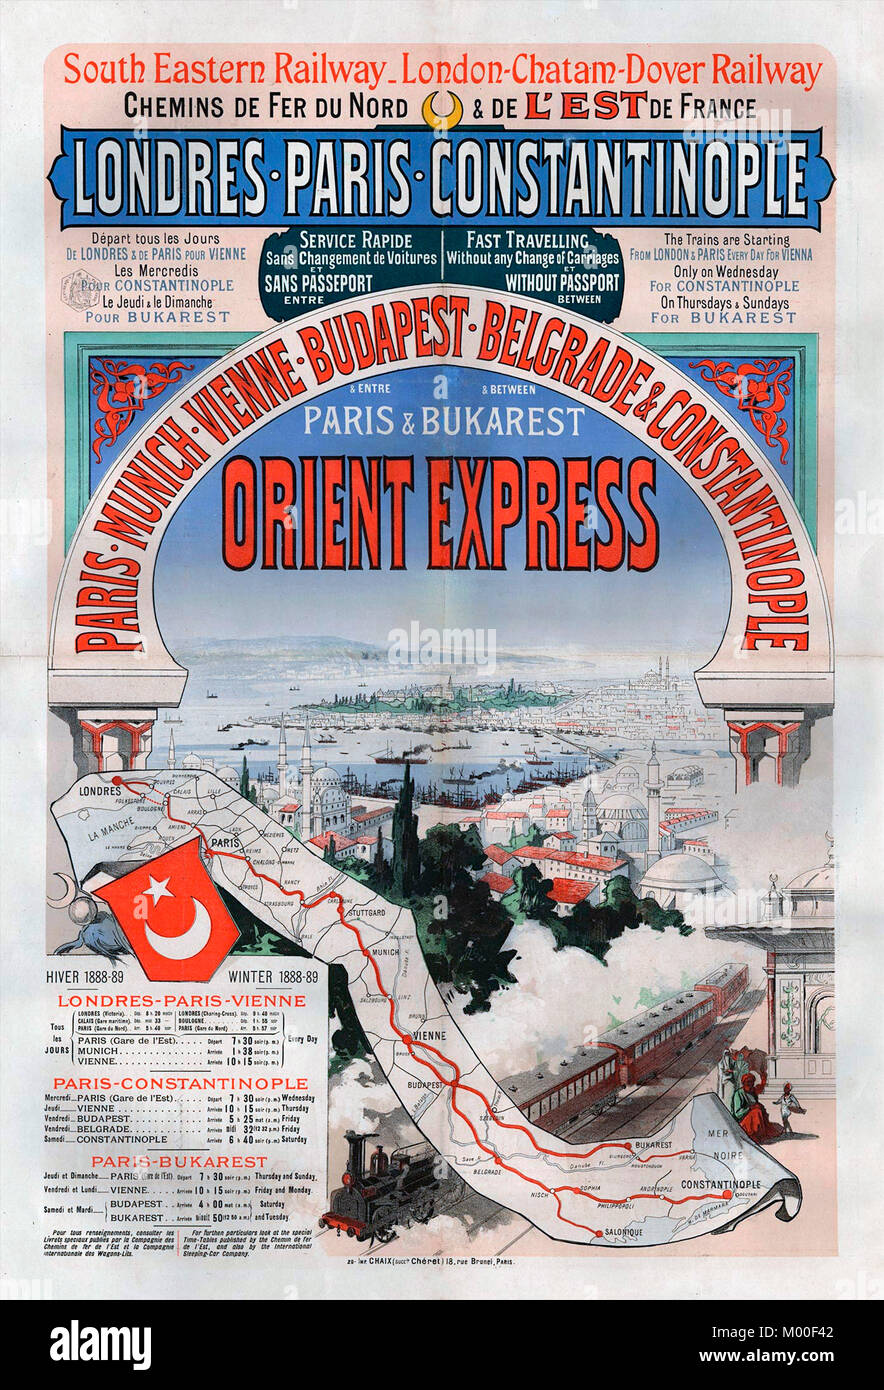 Poster advertising the Orient Express train journey between London and Constantinople (Istanbul) in 1888. - Stock Image